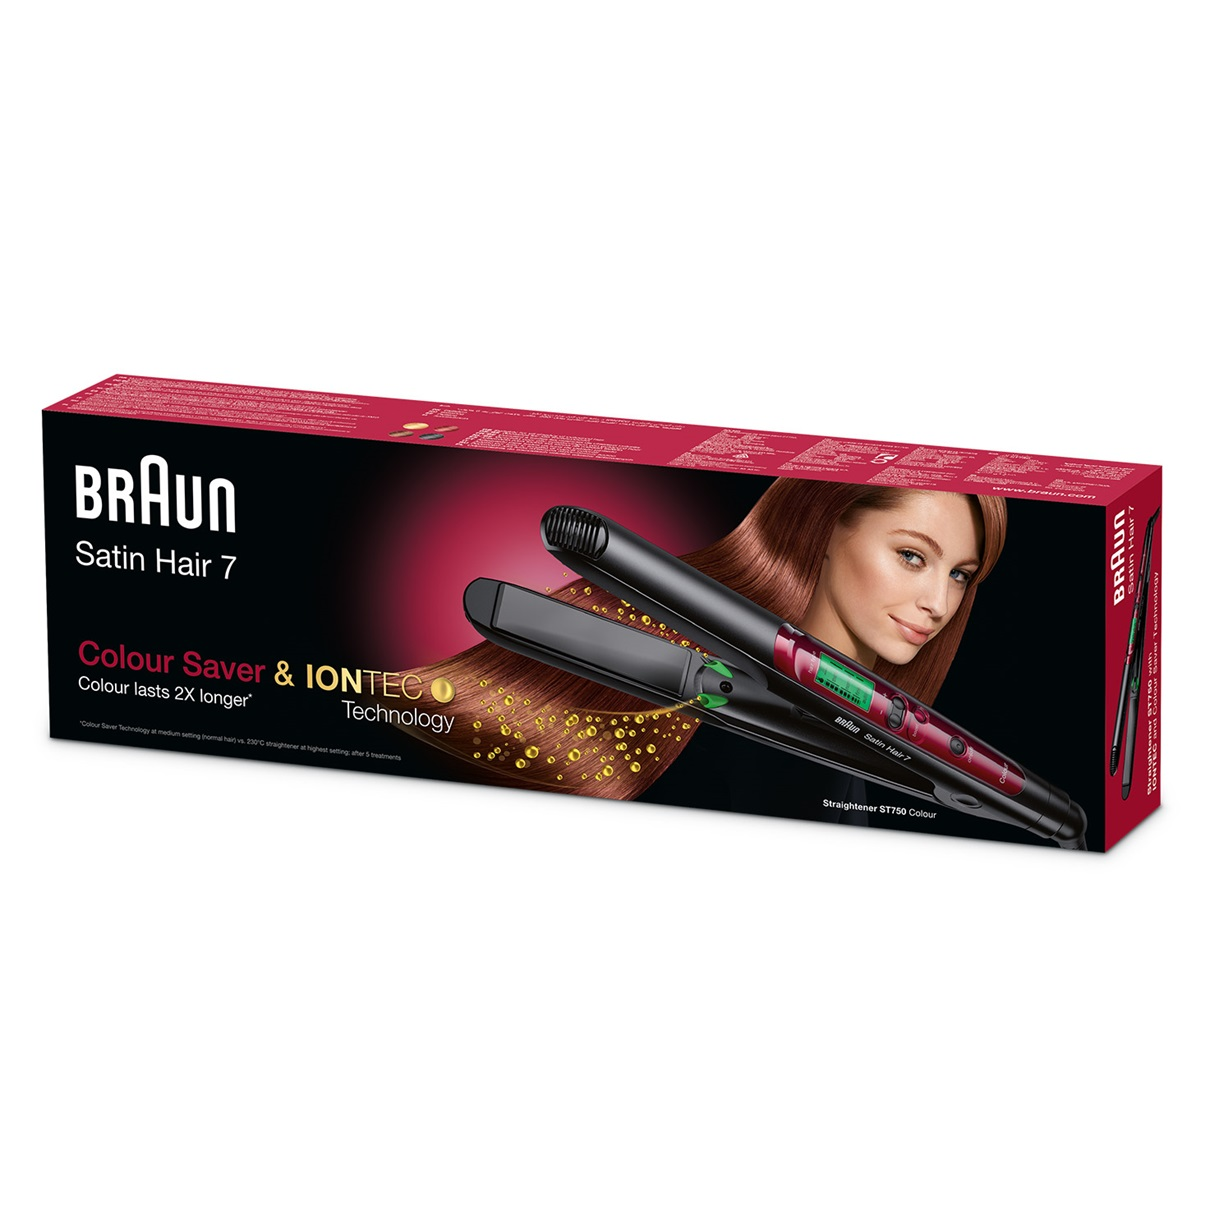 Braun Satin Hair 7 Colour straightener ST750 with Colour Saver technology - packaging